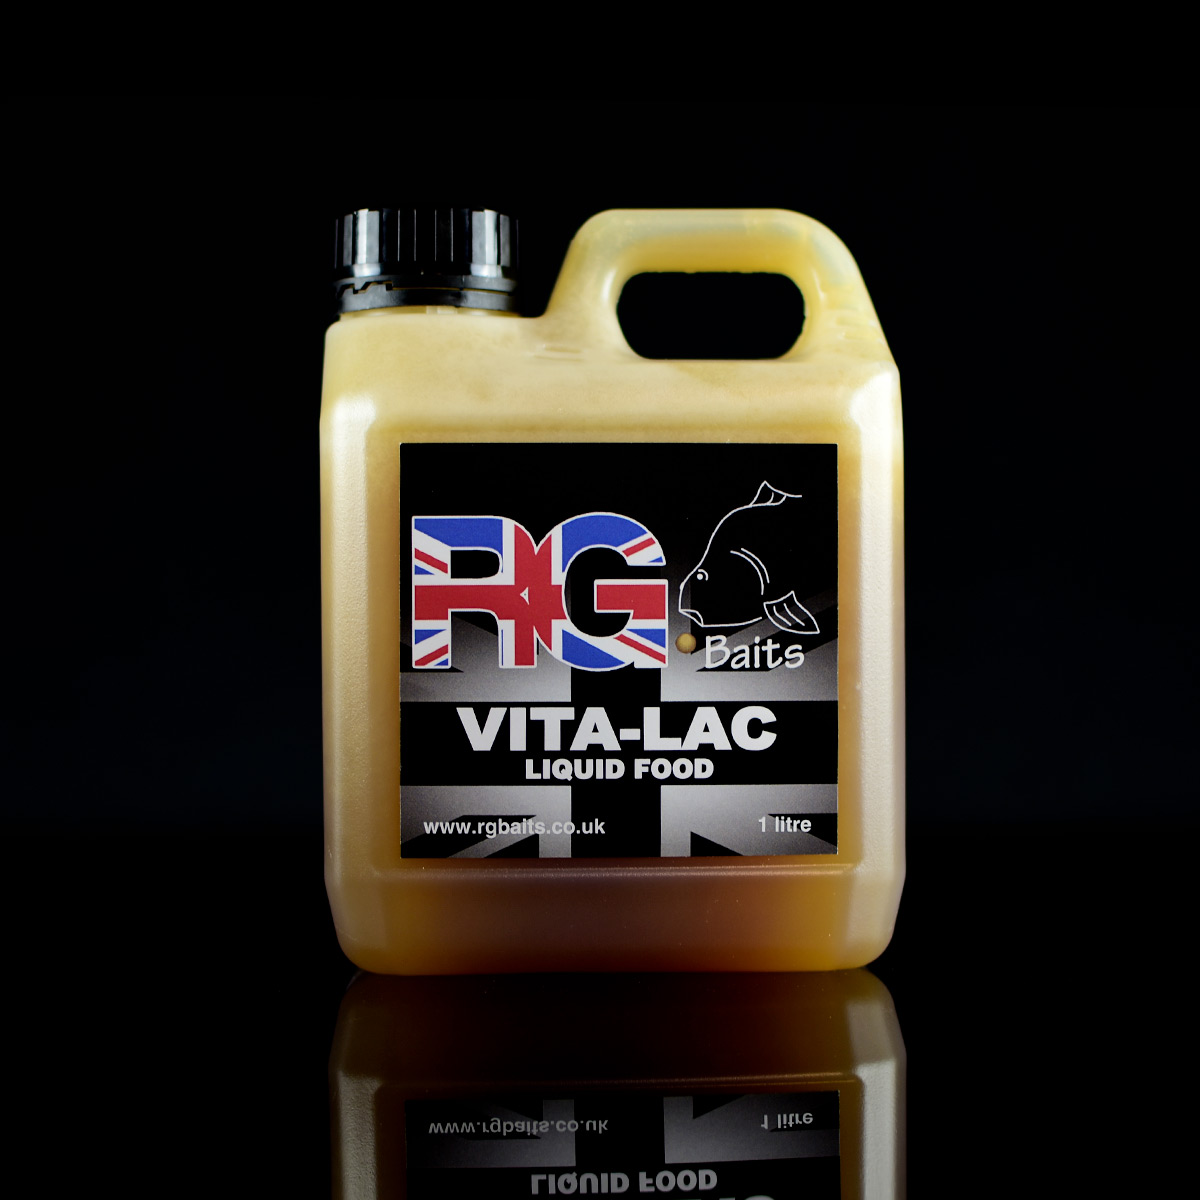 Vita-lac Liquid Food